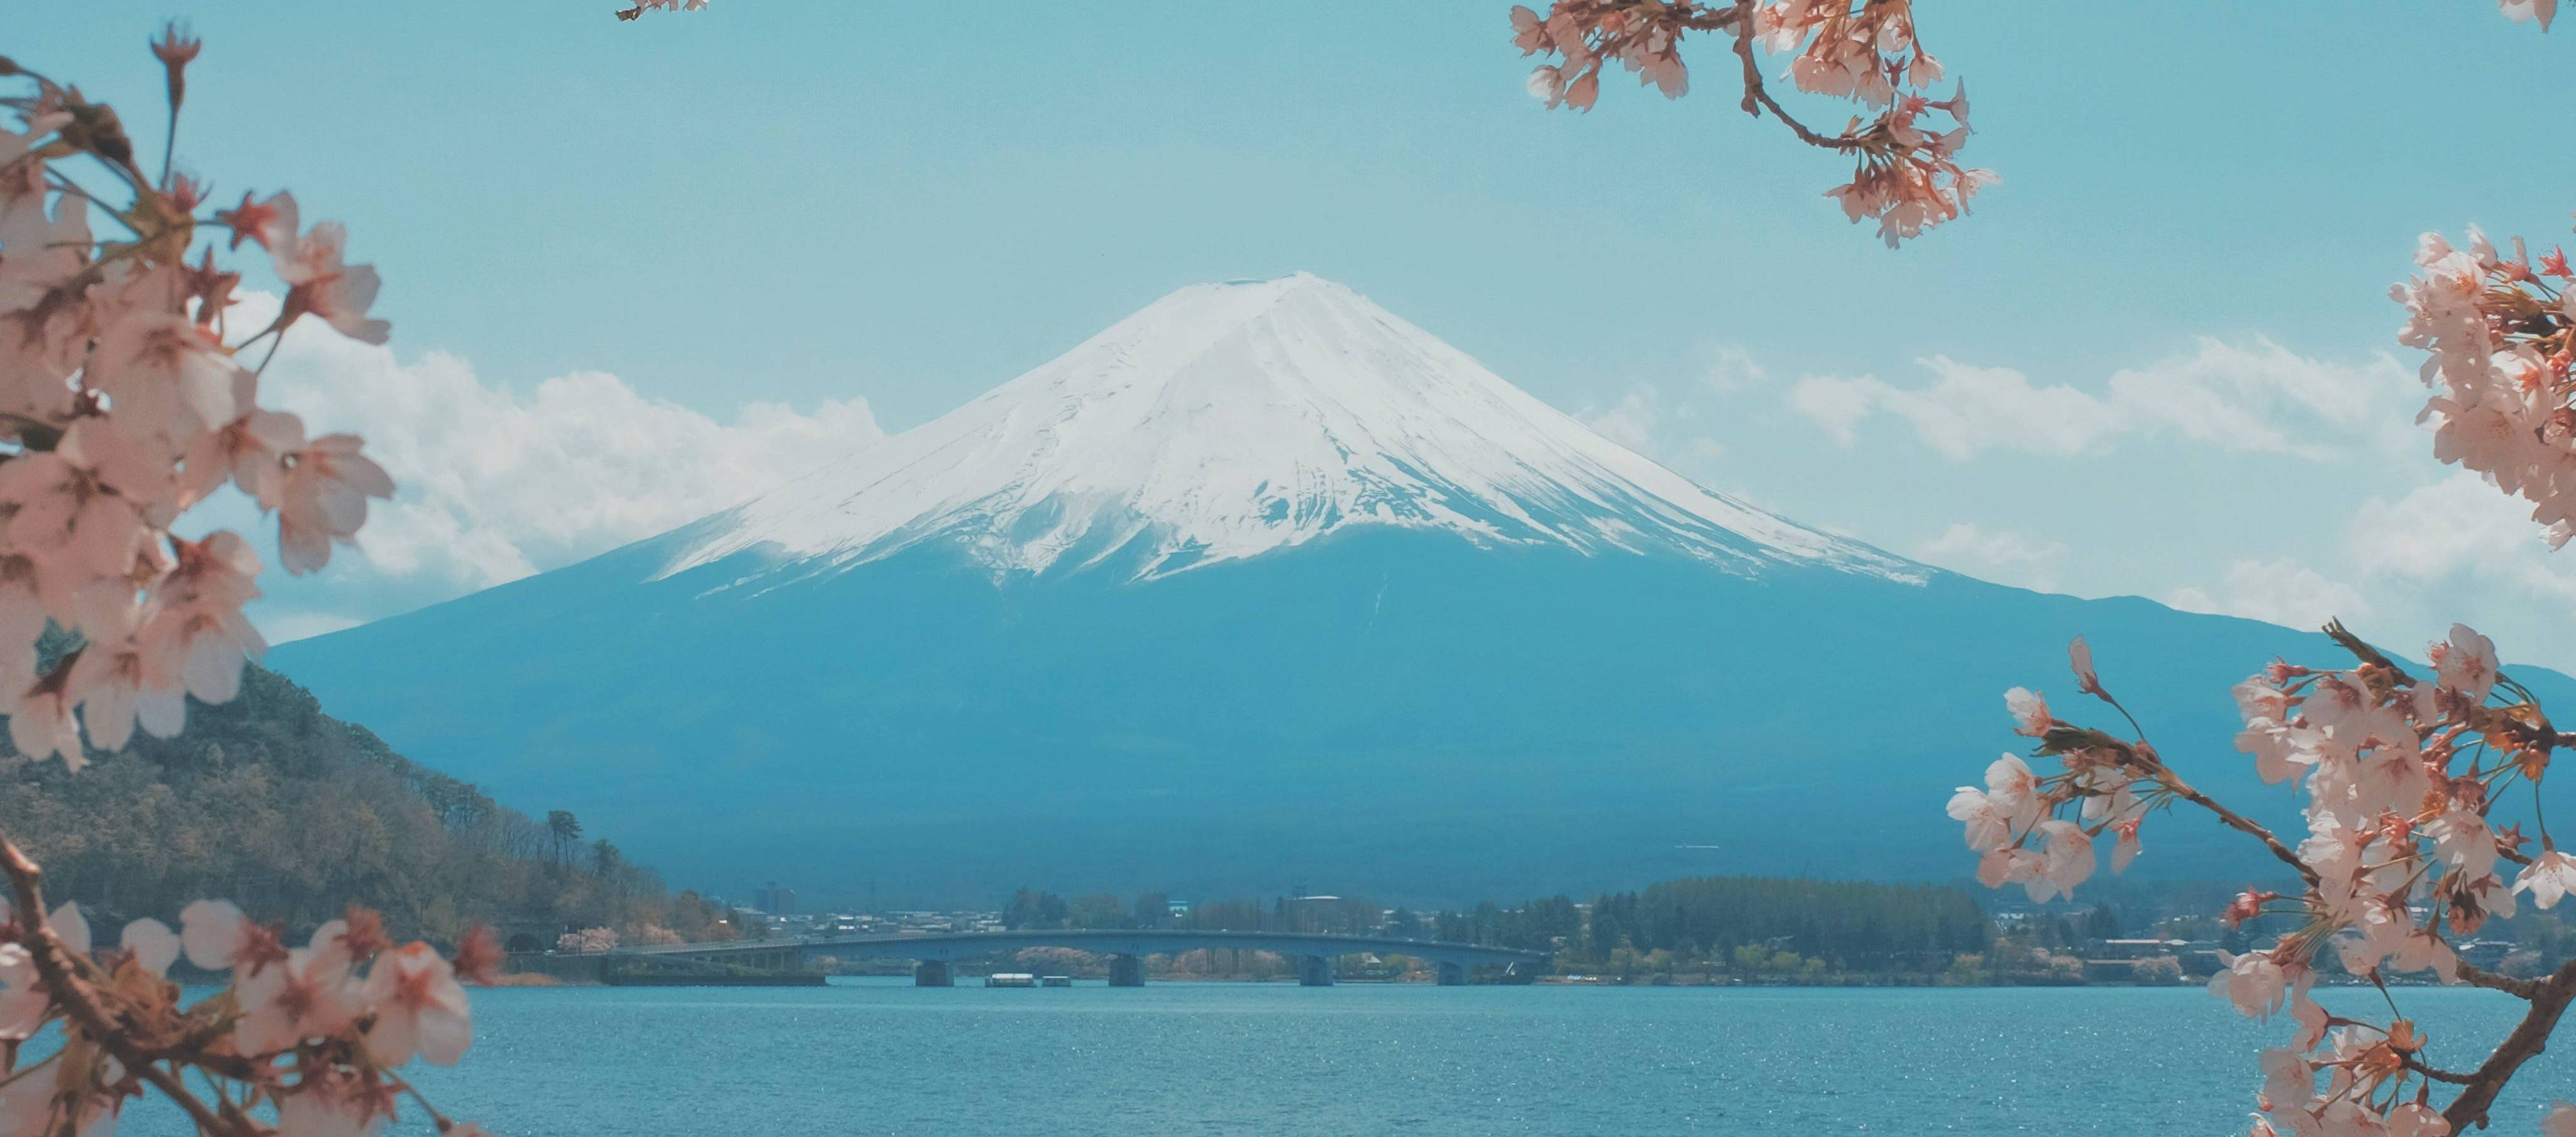 Sacred Mountain Fuji as framed by cherry blossoms.